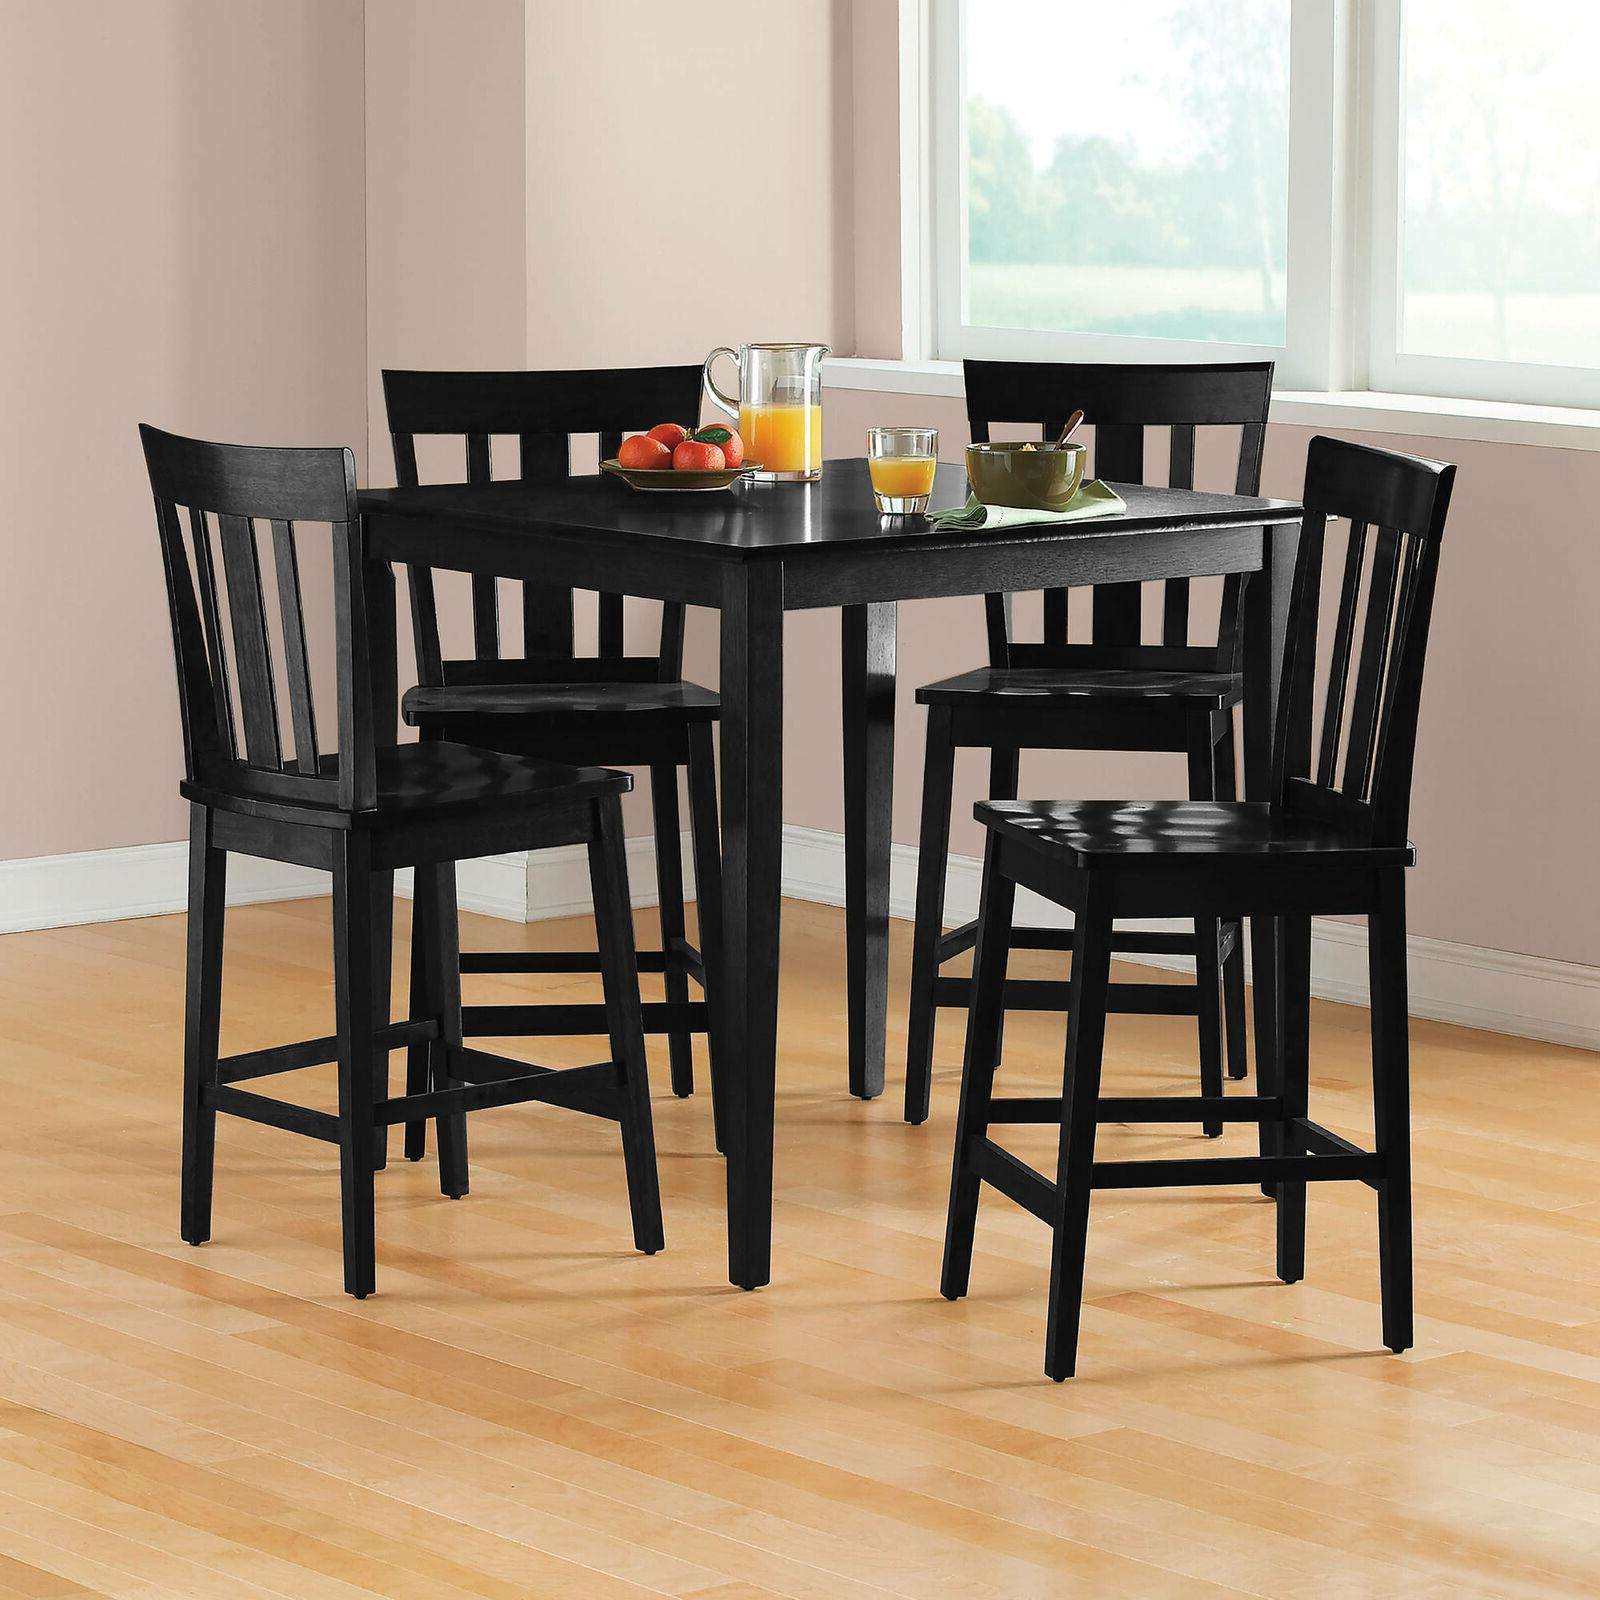 Dining Table and Set 5 Piece Counter Height Furniture Home Black